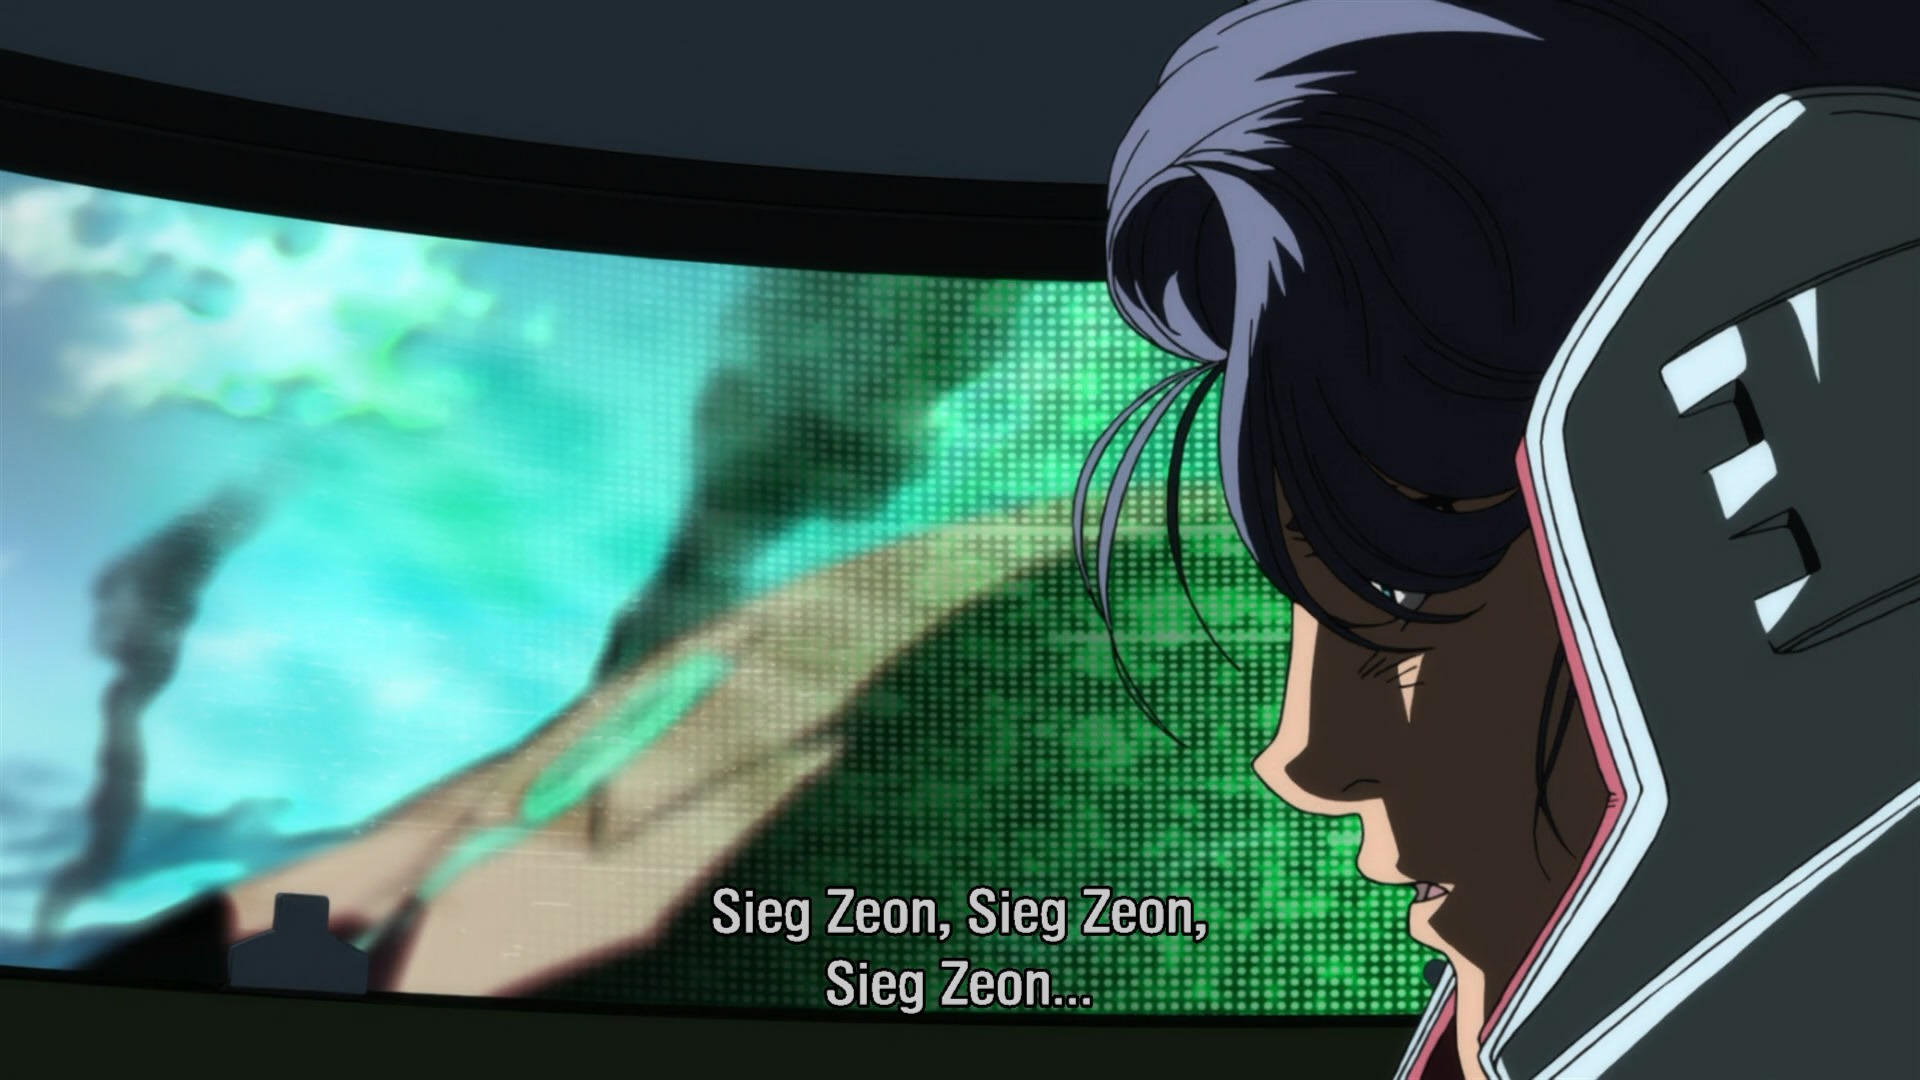 All Anime In One Wallpaper The Despair Of Zeon At The Bottom Of The Gravity Well